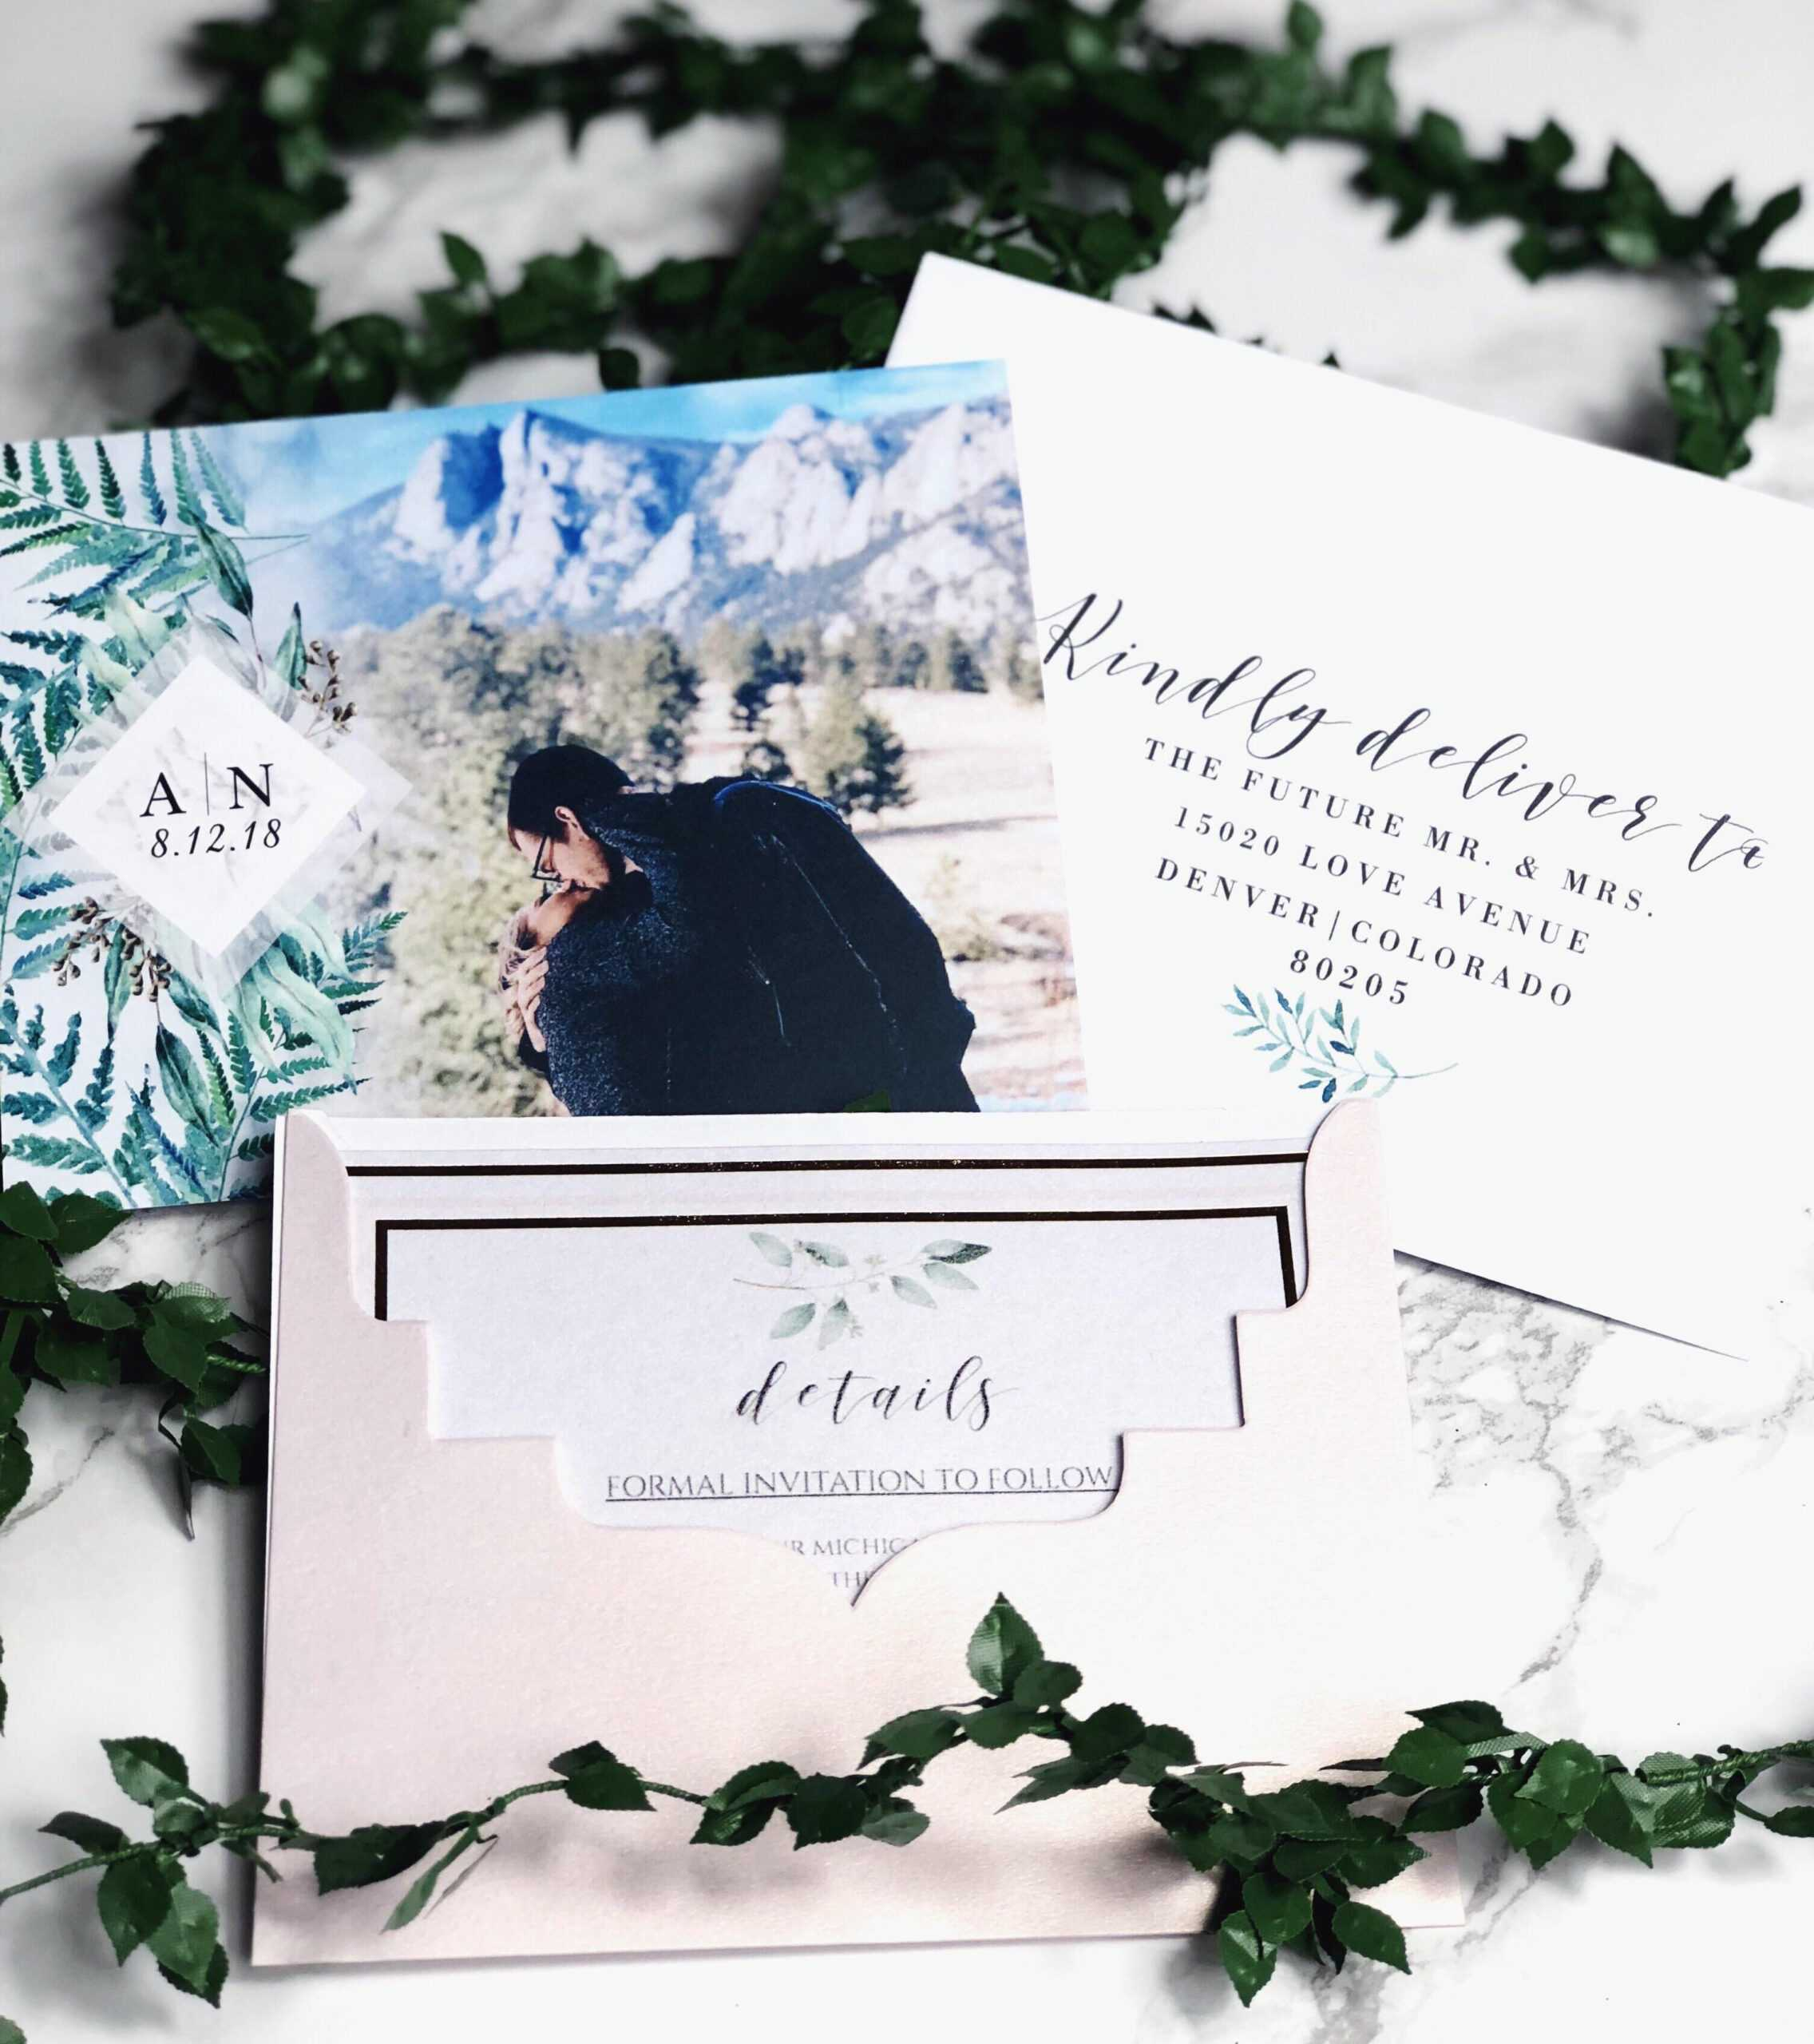 Our Save The Dates! Photo From Vistaprint, Envelope Pertaining To Michaels Place Card Template